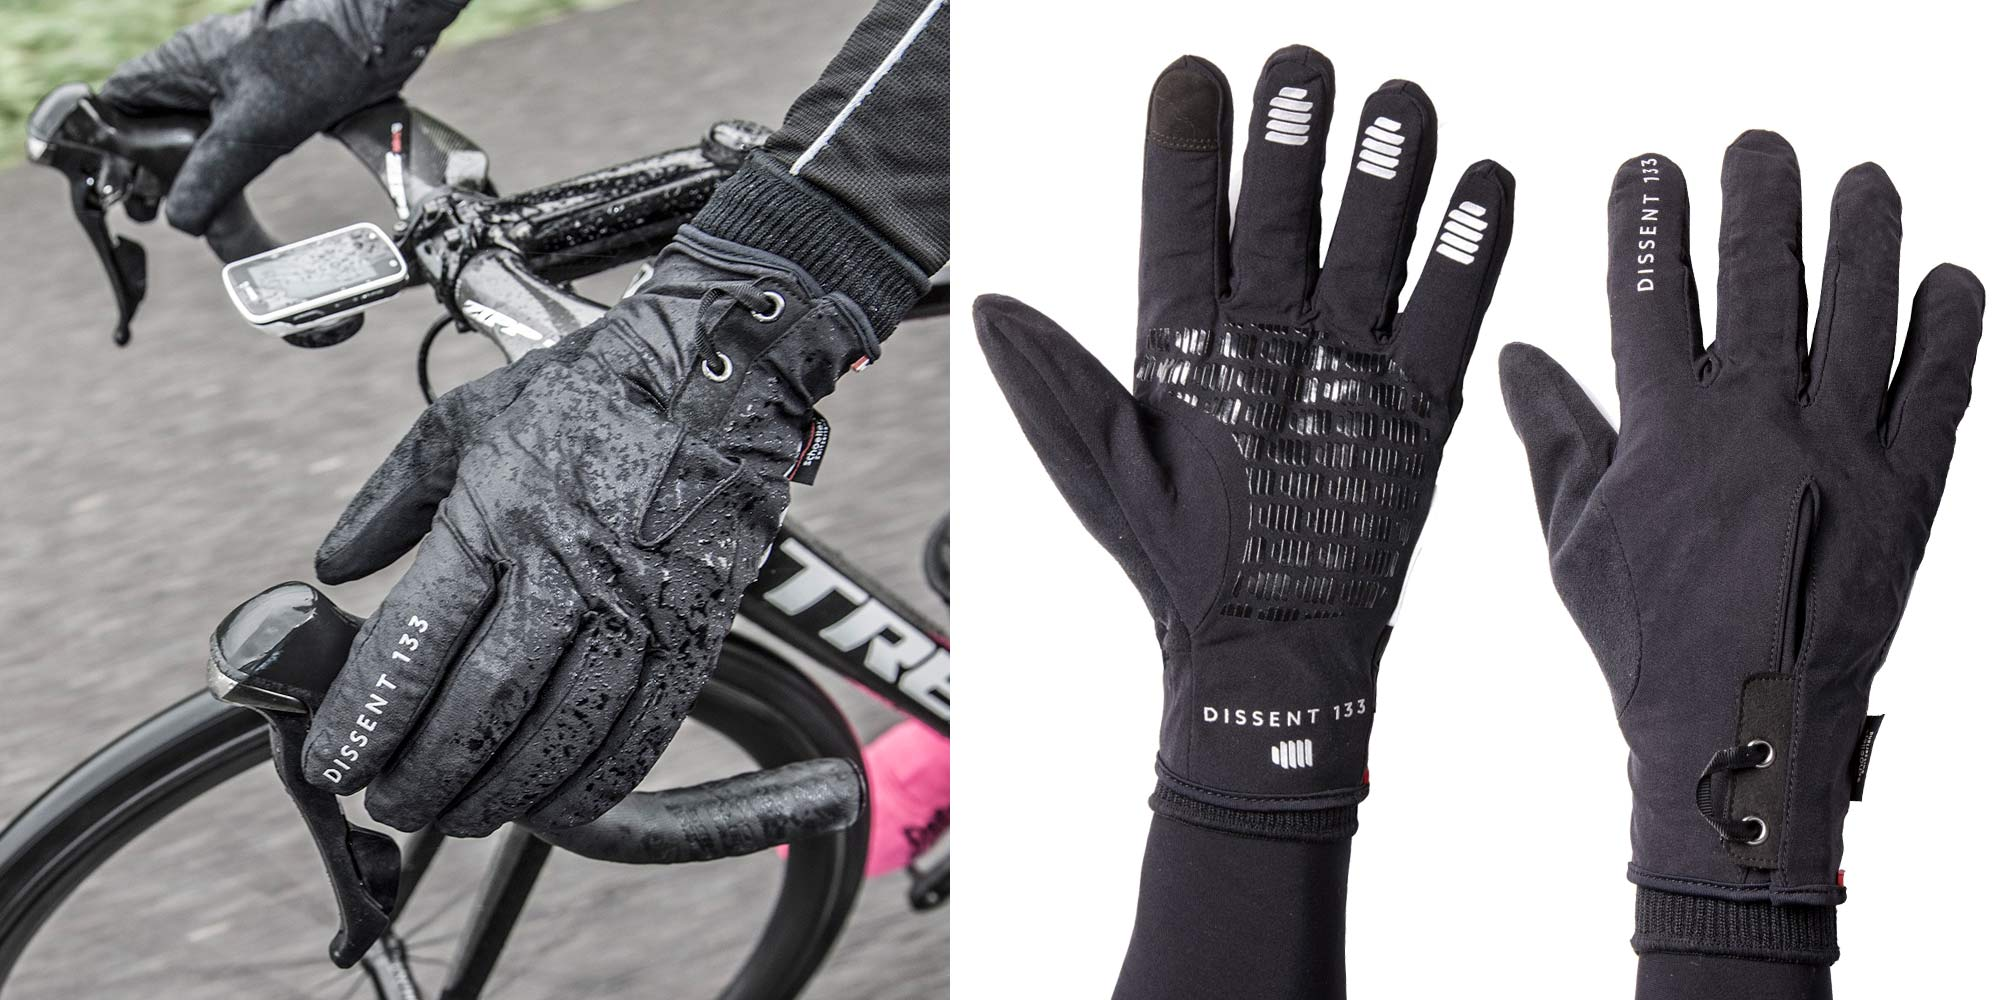 Dissent 133 by TheRiderFirm layered winter biking gloves wet cold cycling glove system OutDry waterproof shell glove